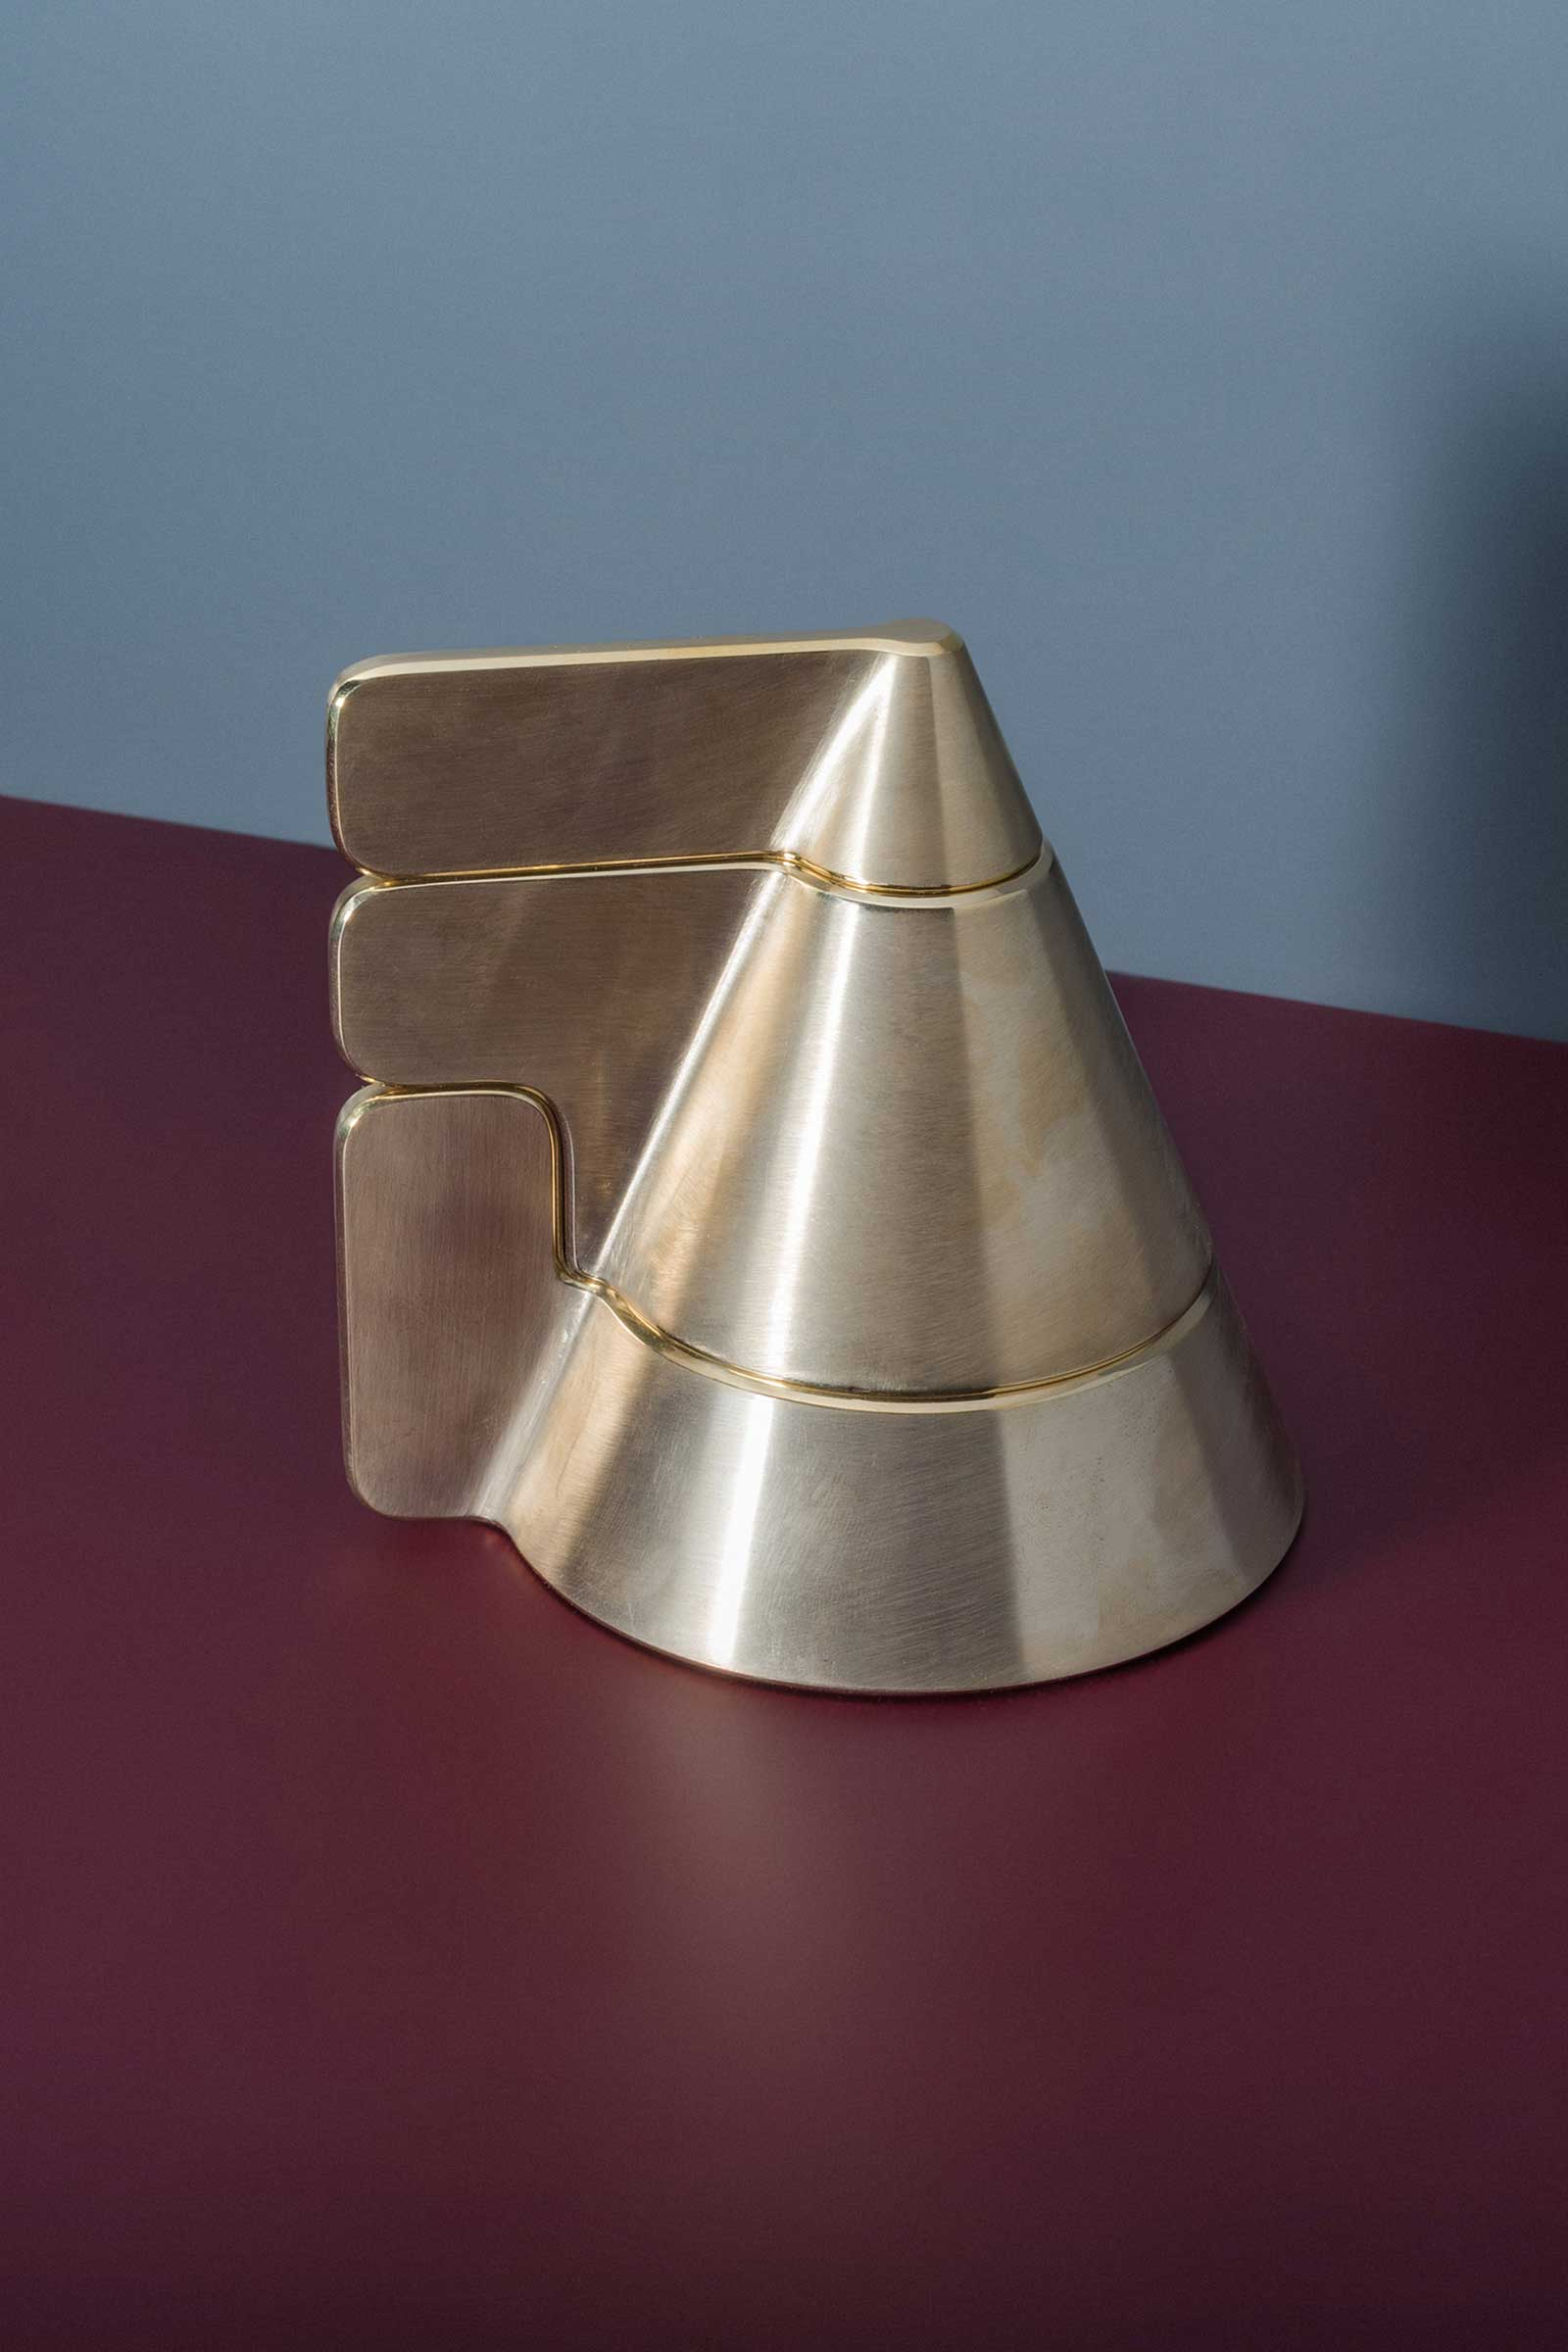 10-Studio-Dejawu-cone_candle_holder_01.jpg